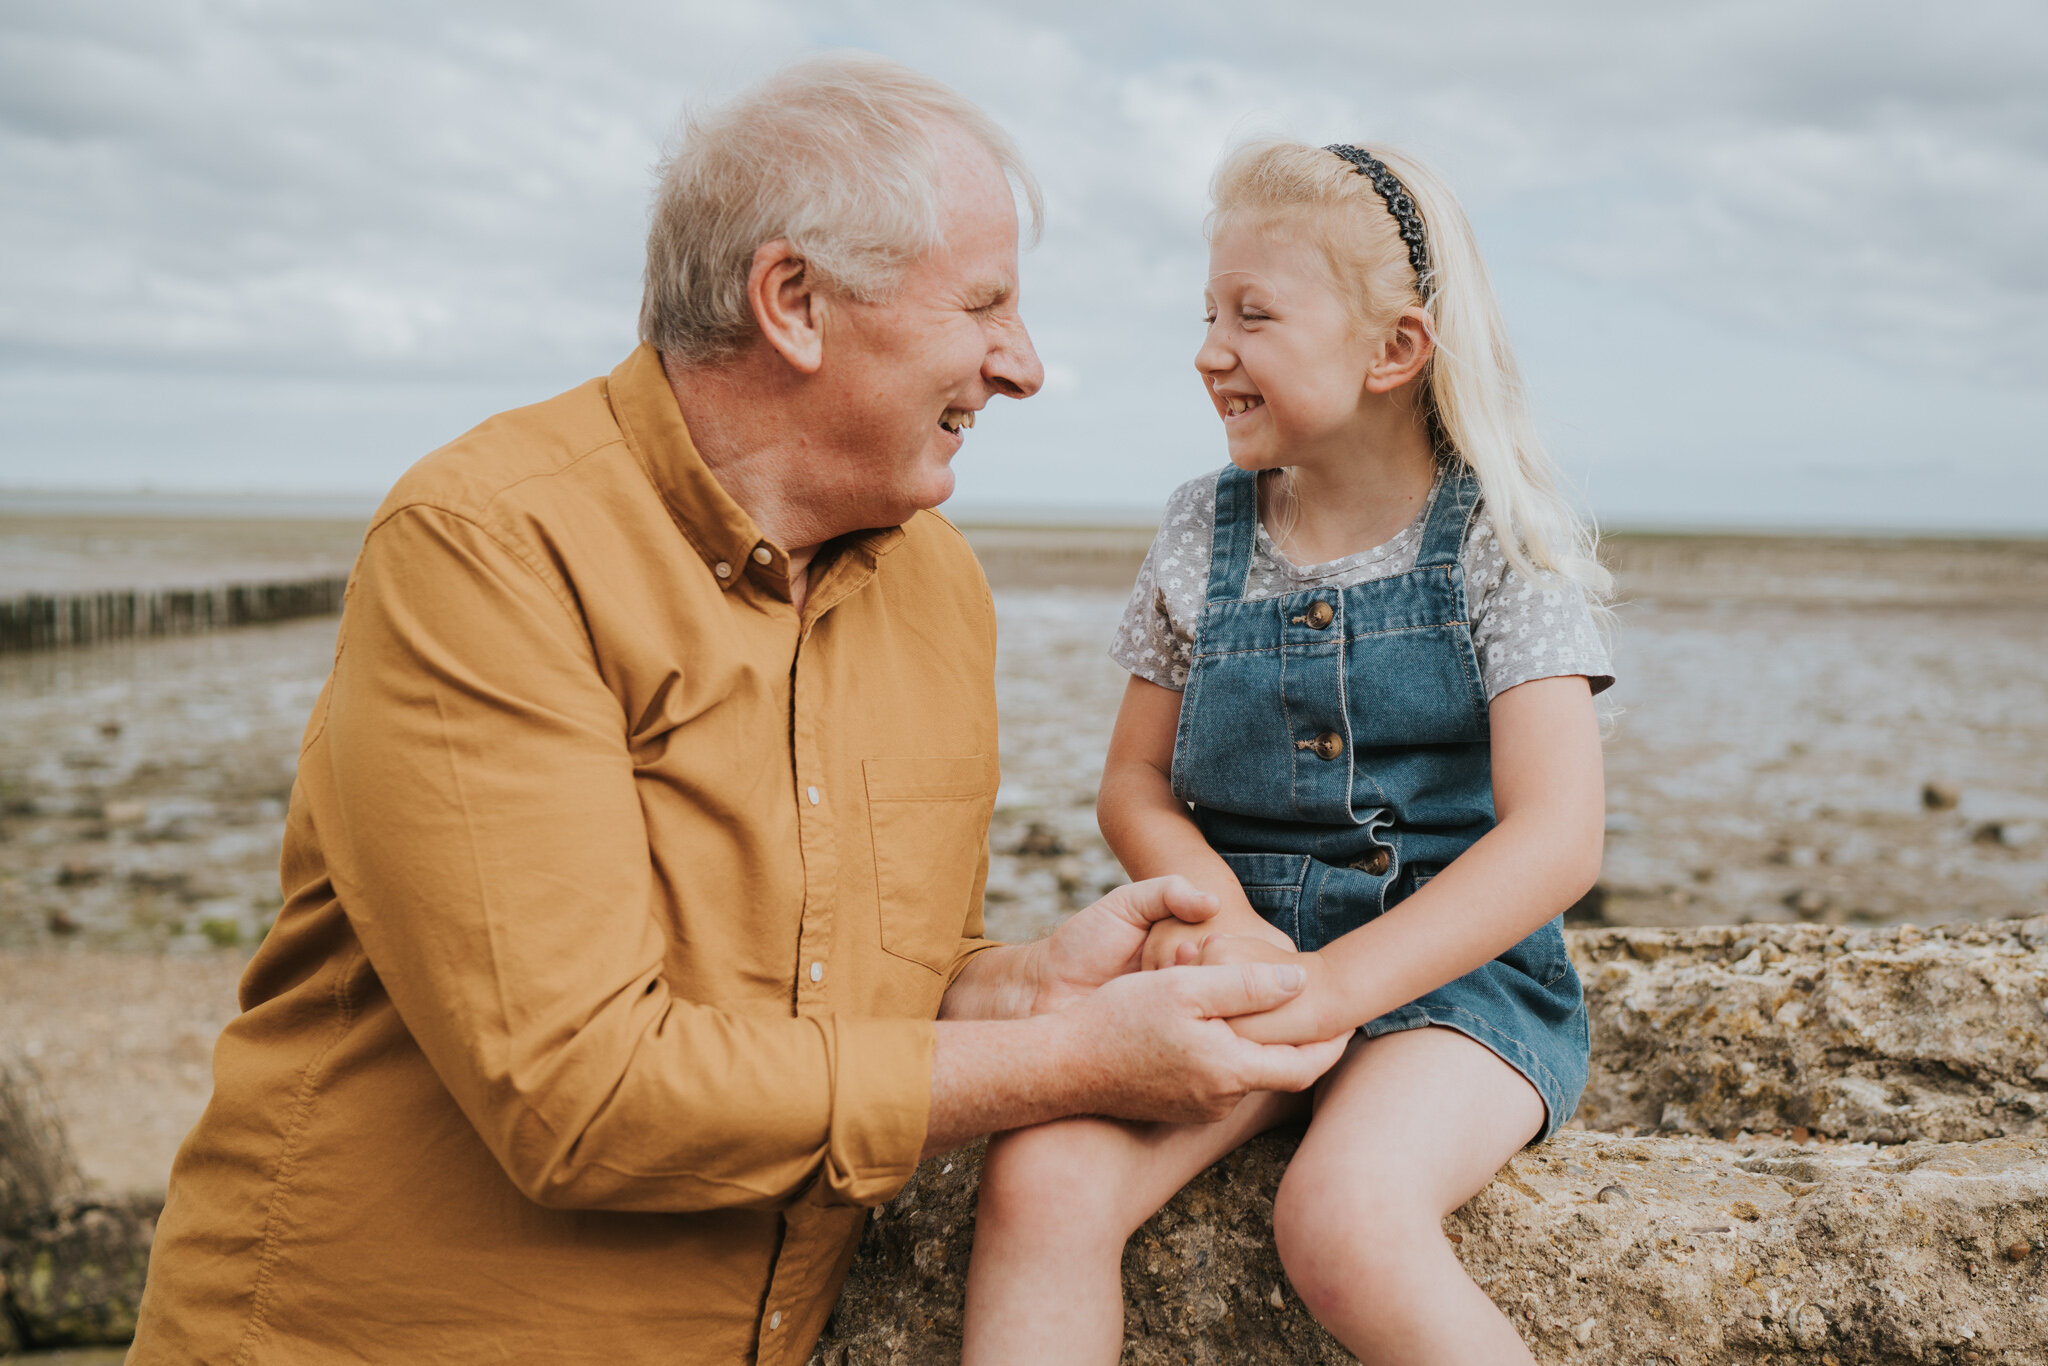 celebratory-beach-family-session-thomson-family-cudmore-grove-east-mersea-grace-elizabeth-colchester-essex-devon-suffolk-and-norfolk-alternative-wedding-and-family-photographer (7 of 53).jpg